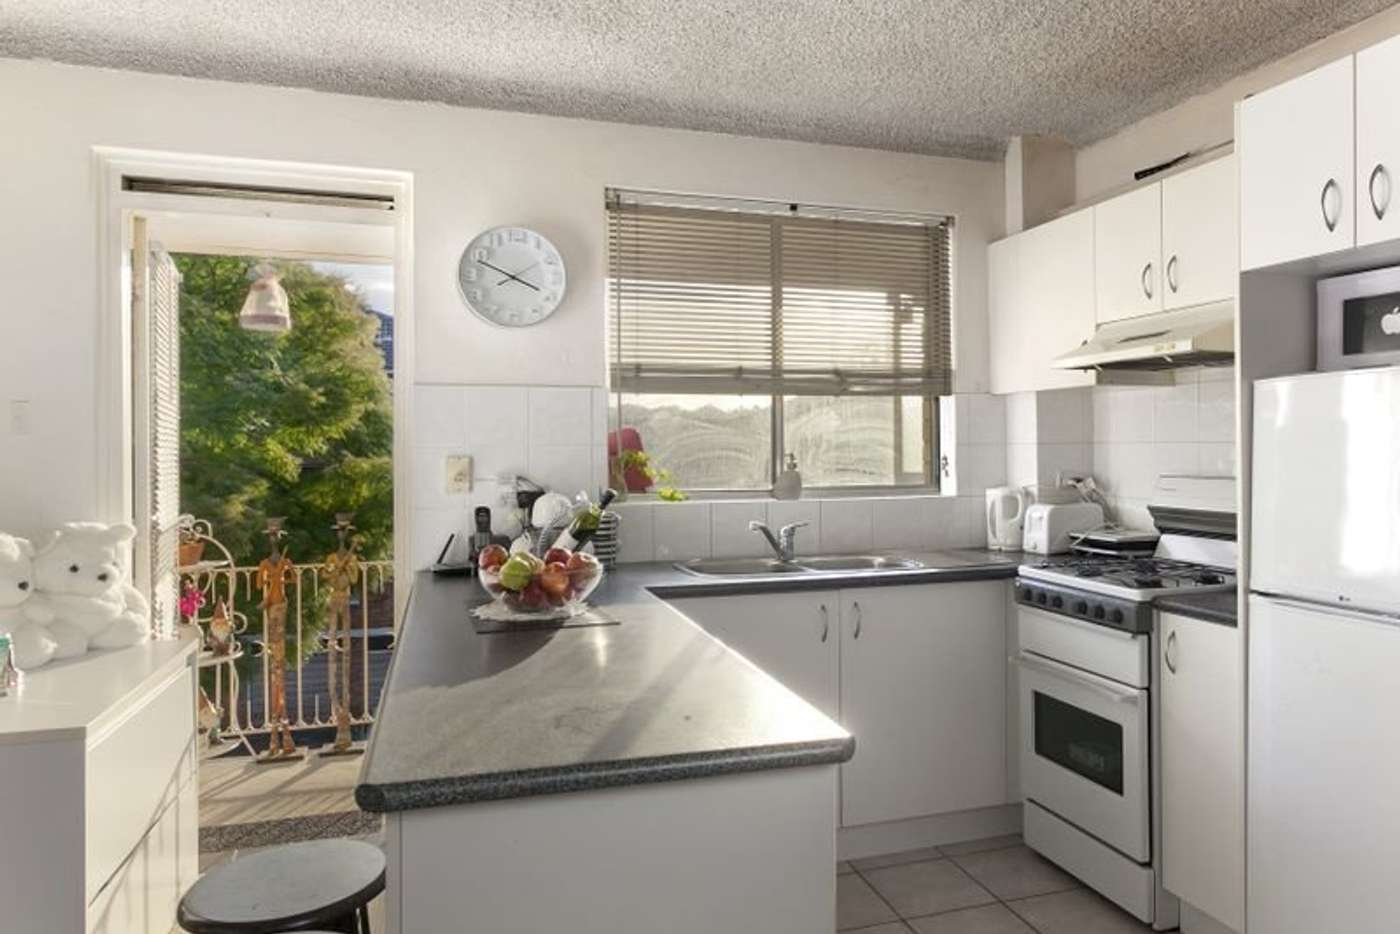 Main view of Homely apartment listing, 14/53 Pacific Parade, Dee Why NSW 2099